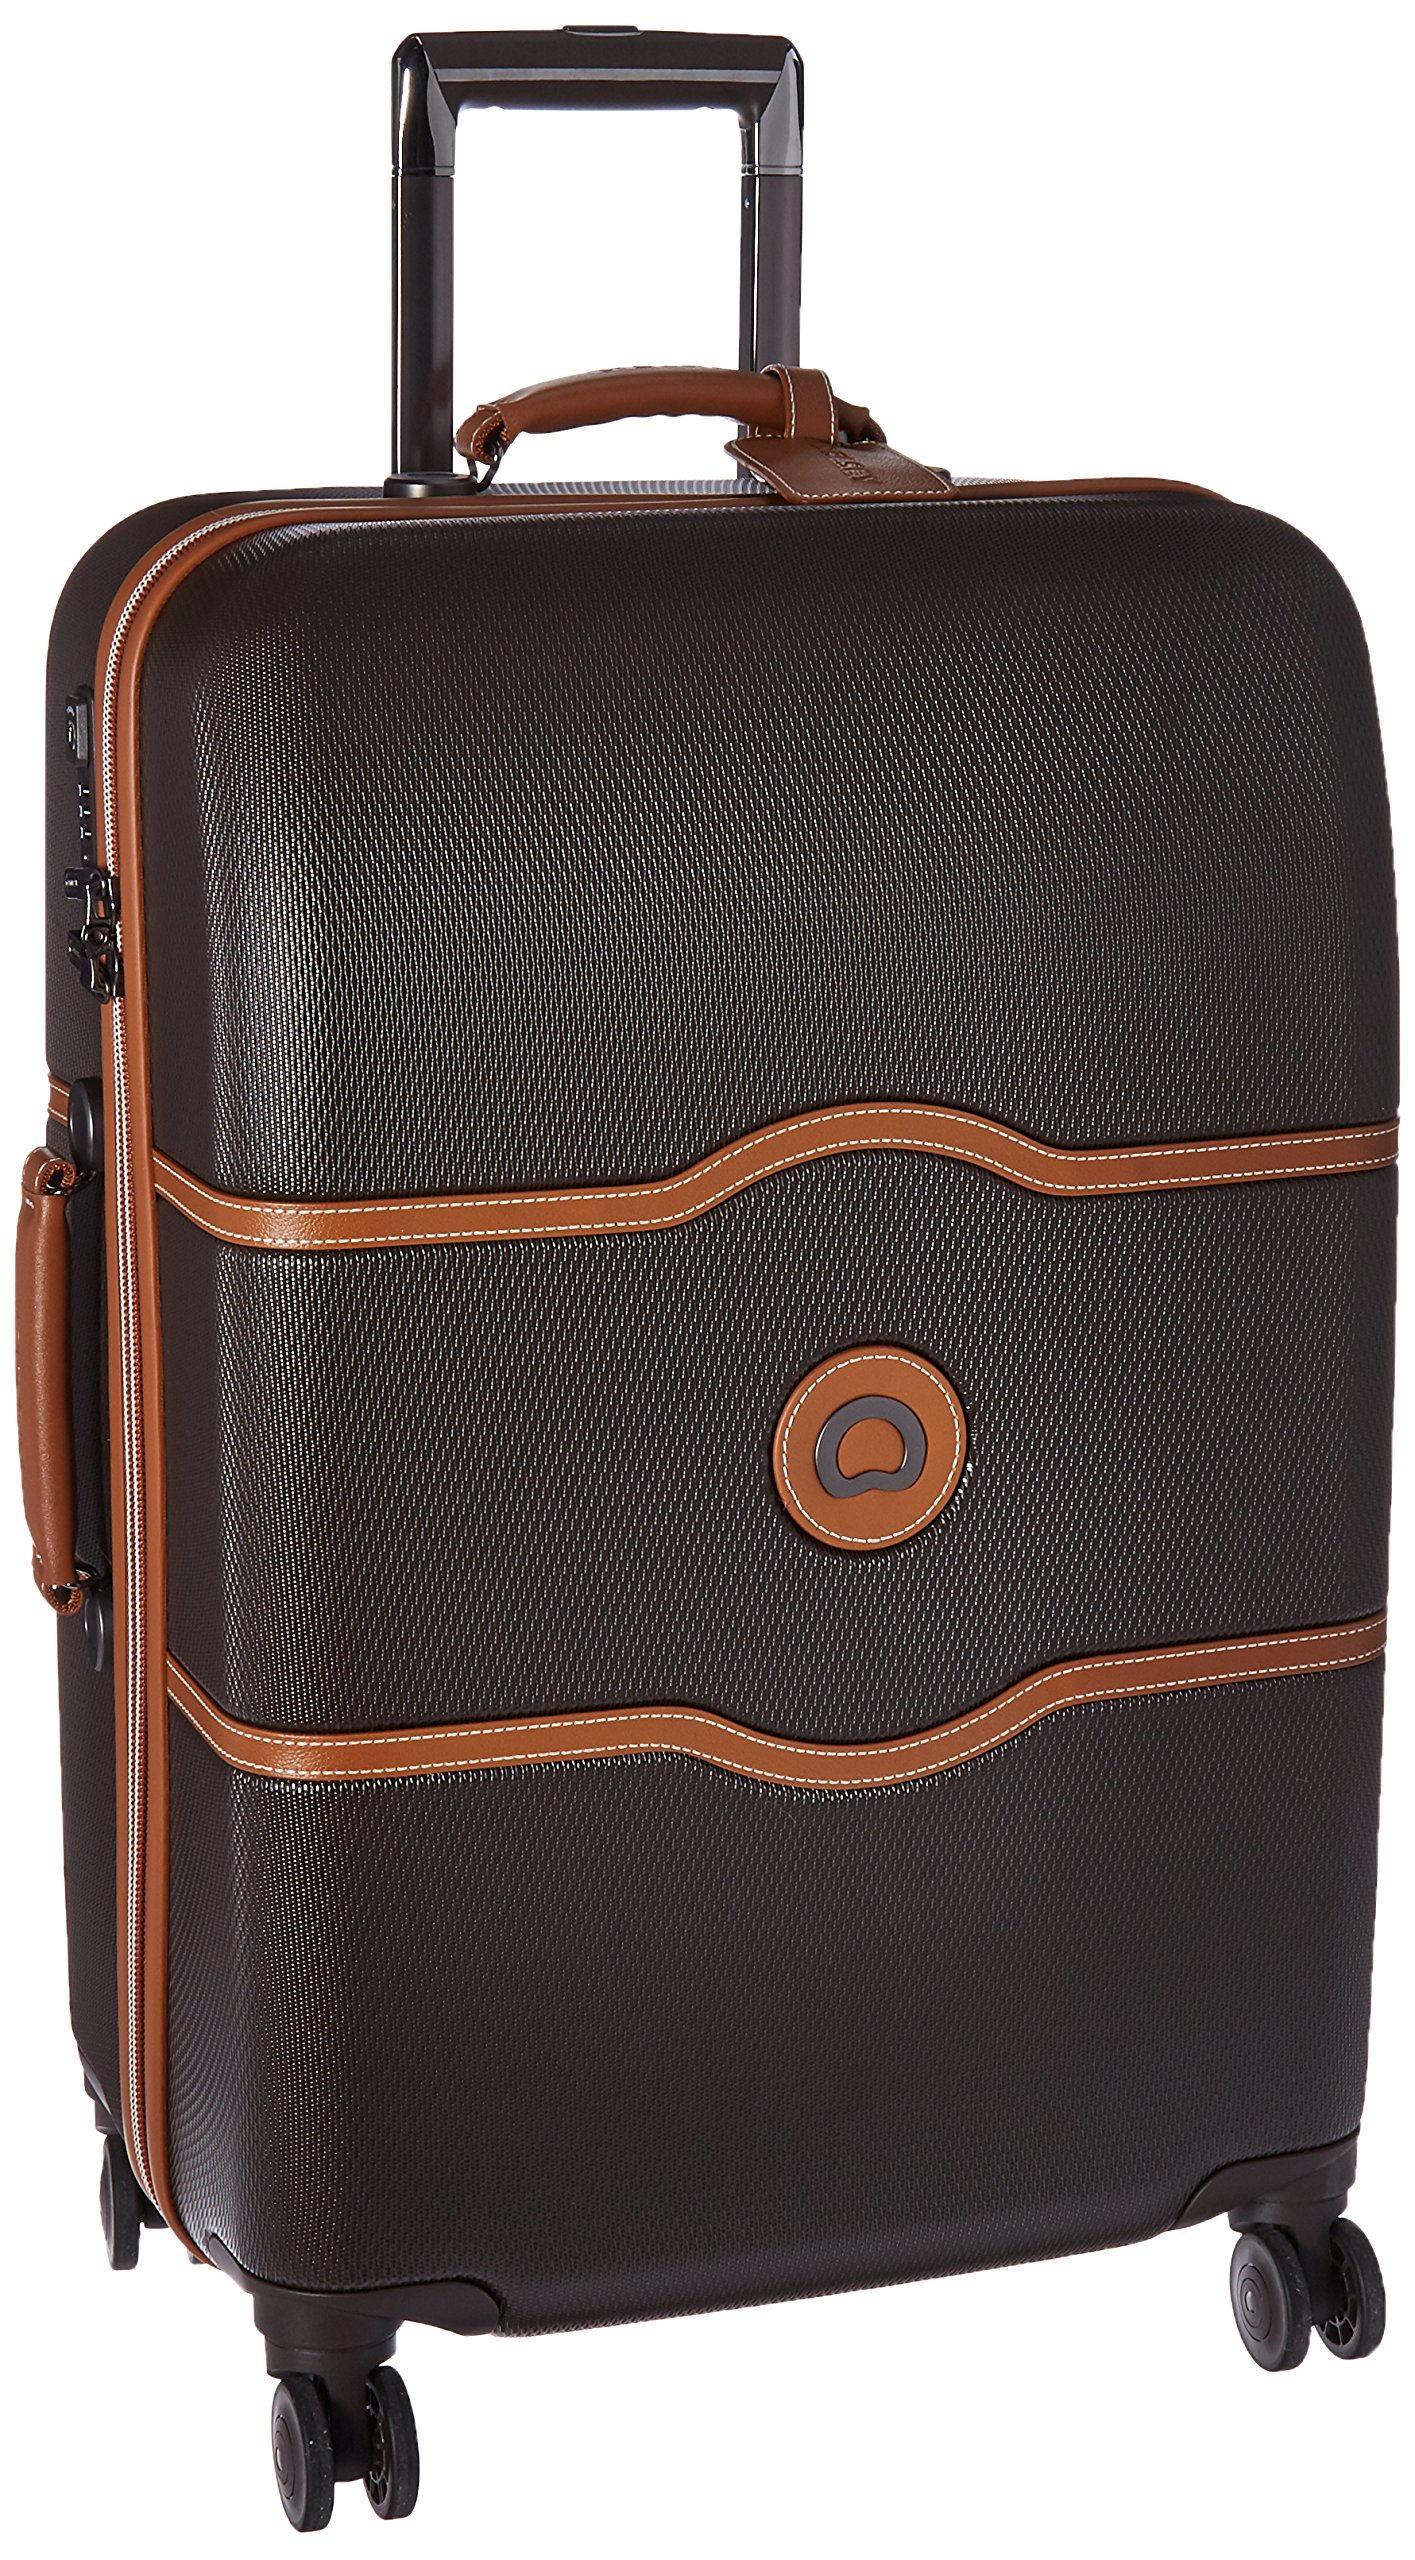 DELSEY Paris Checked-Medium, Chocolate Brown by DELSEY Paris